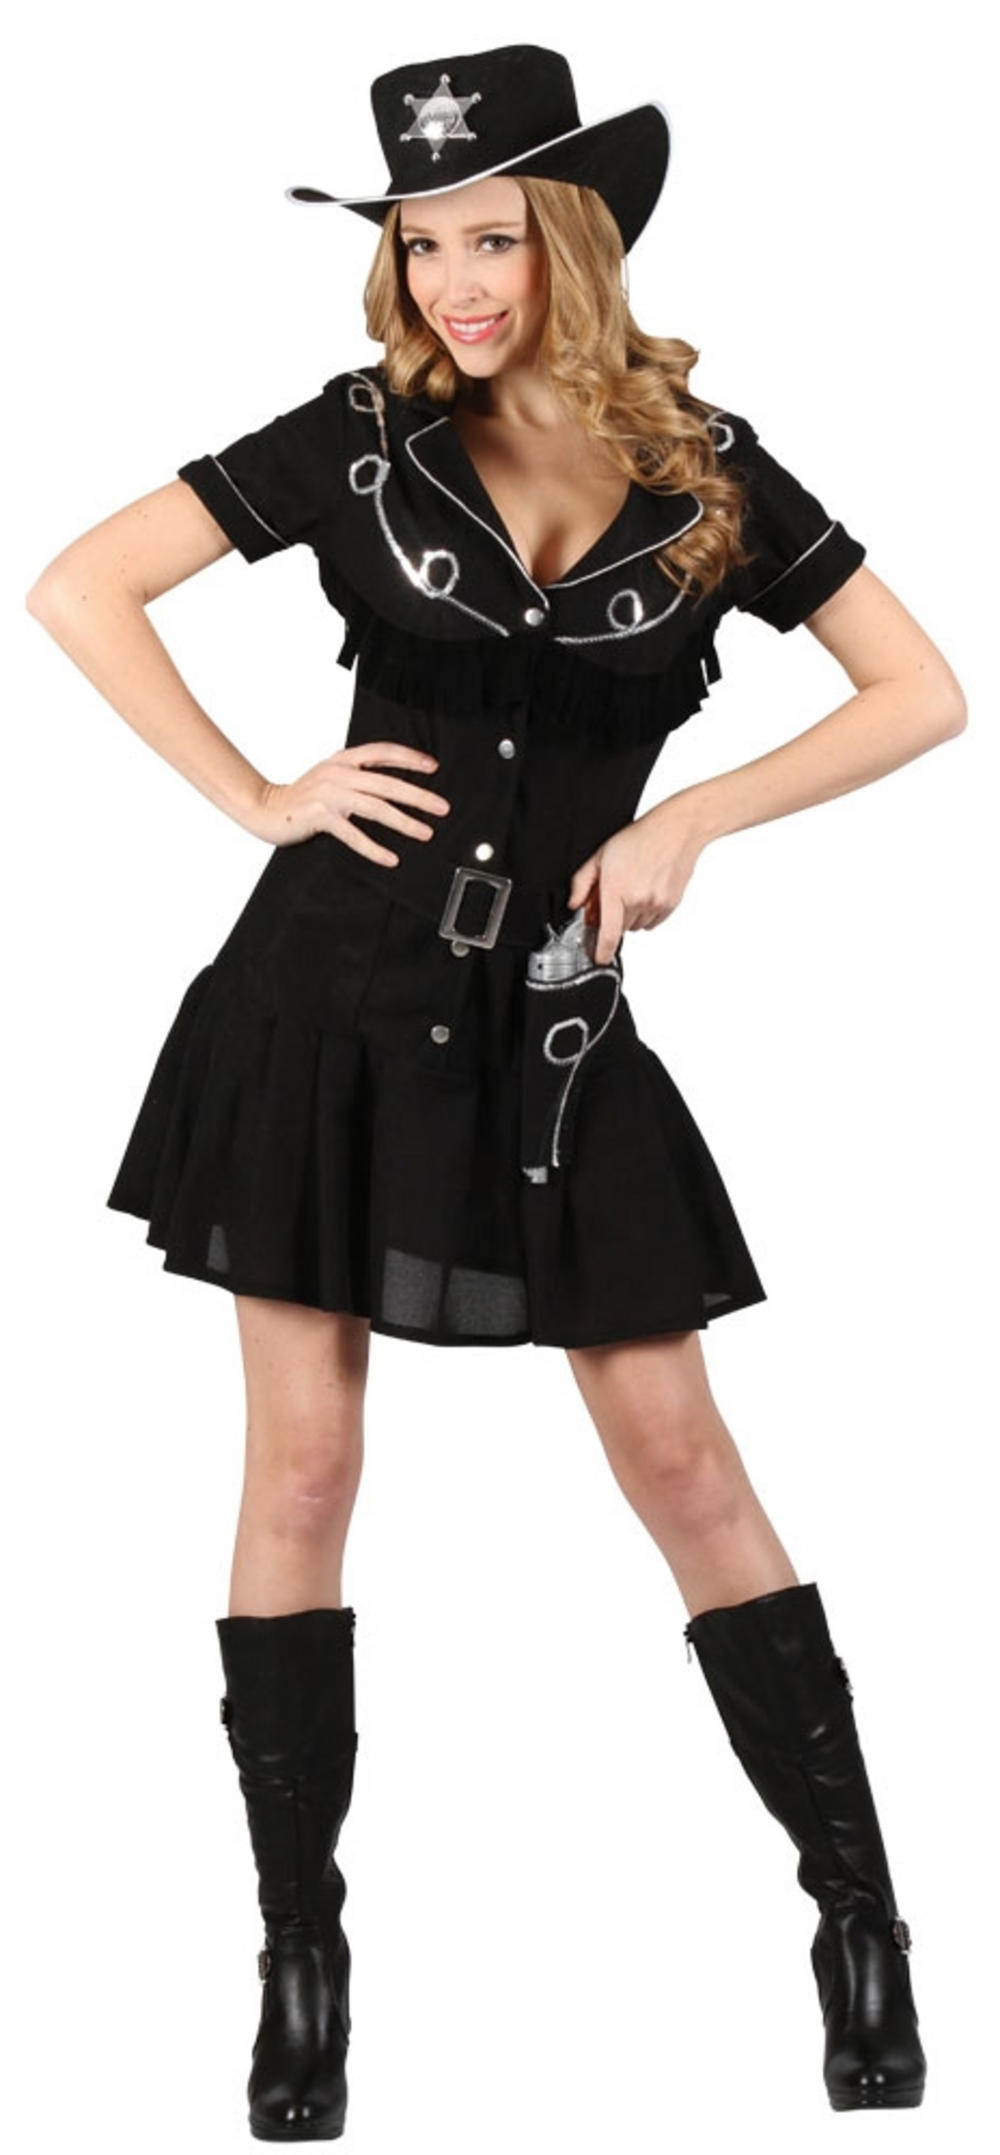 Ladies Gunslingin Cowgirl Costume